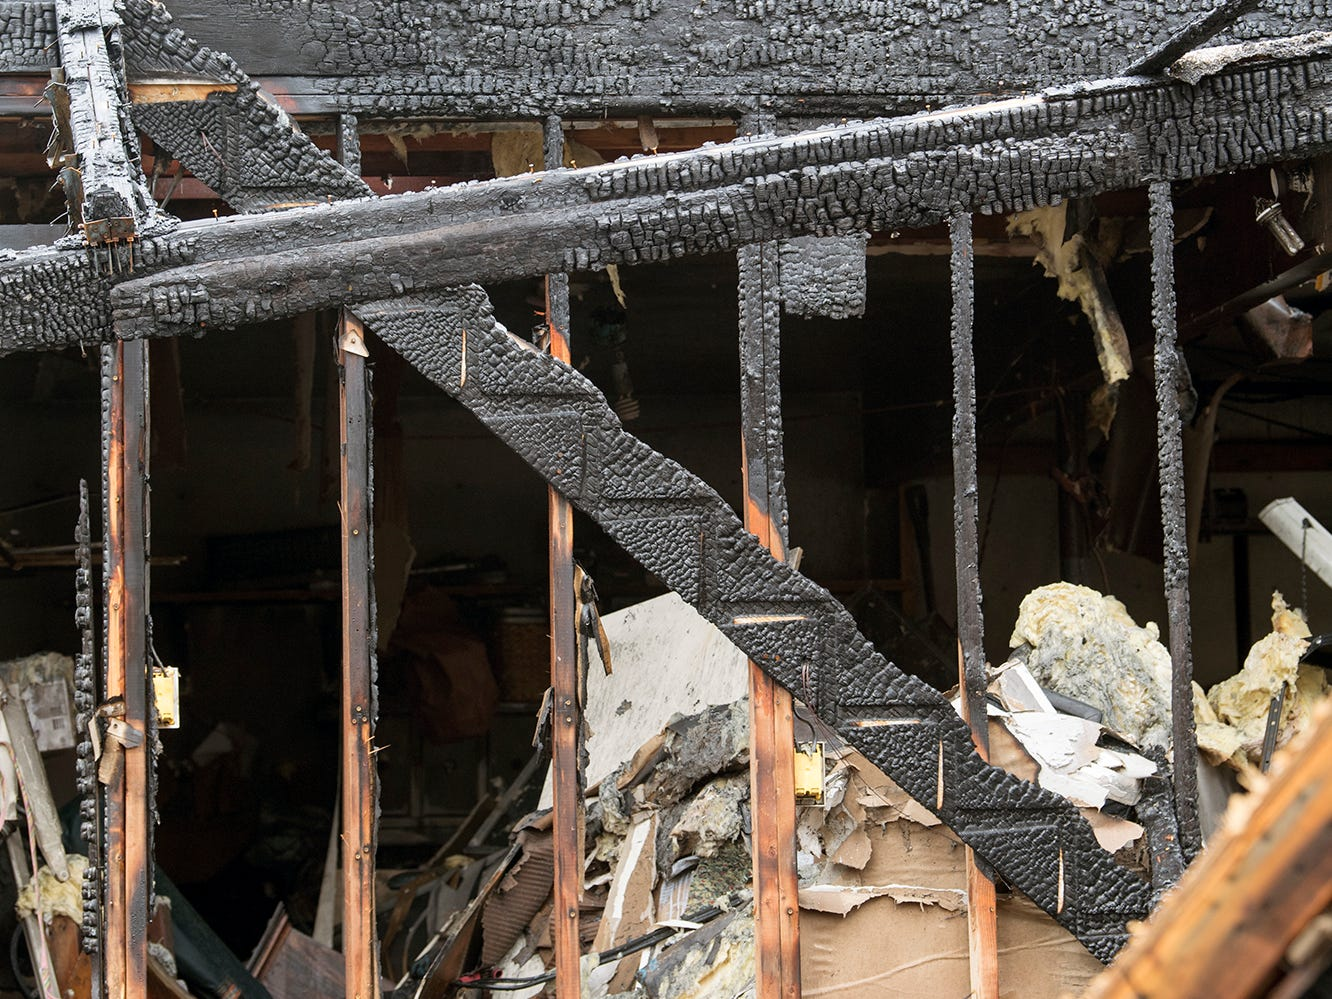 The remains of a staircase that Melissa Herren ran up to find her dogs in the early stages of the fire in Shrewsbury Township on Sunday December 2, 2018.